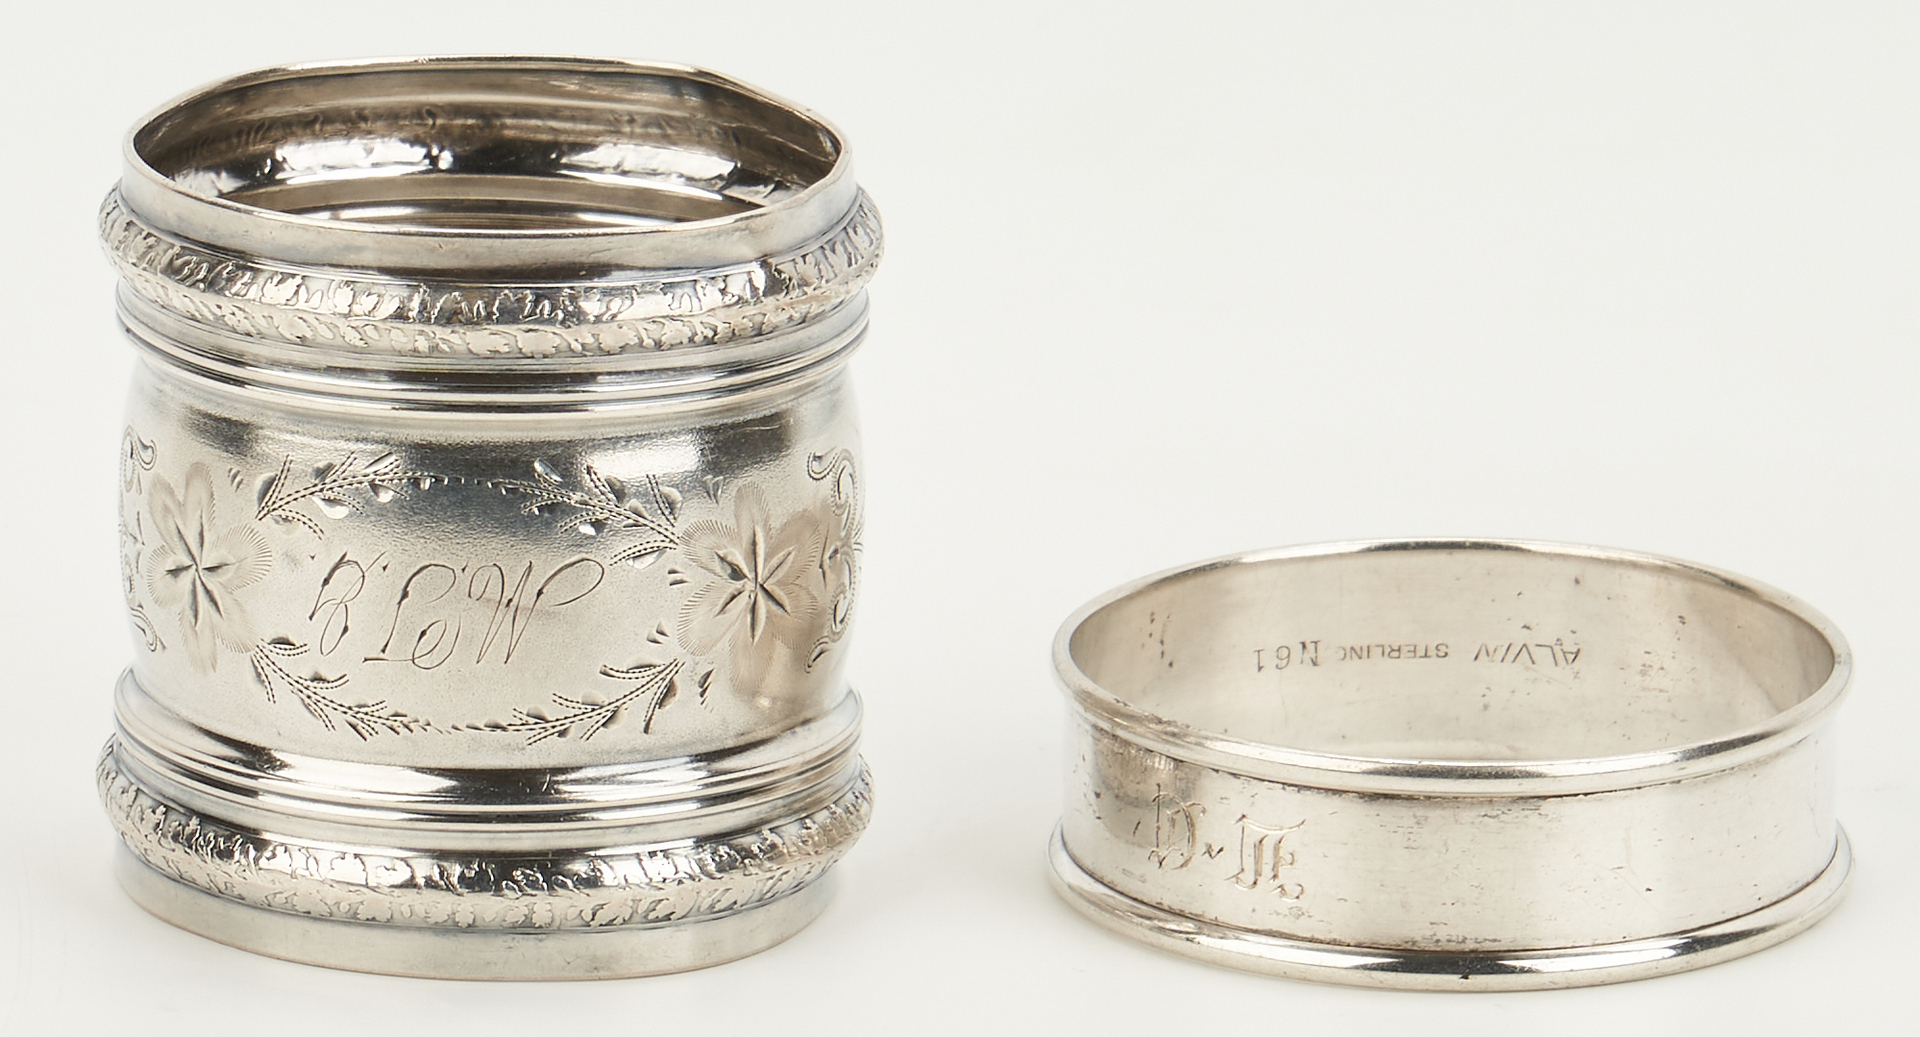 Lot 85: 5 Coin Silver Spoons incl. TN, plus 2 Napkin Rings